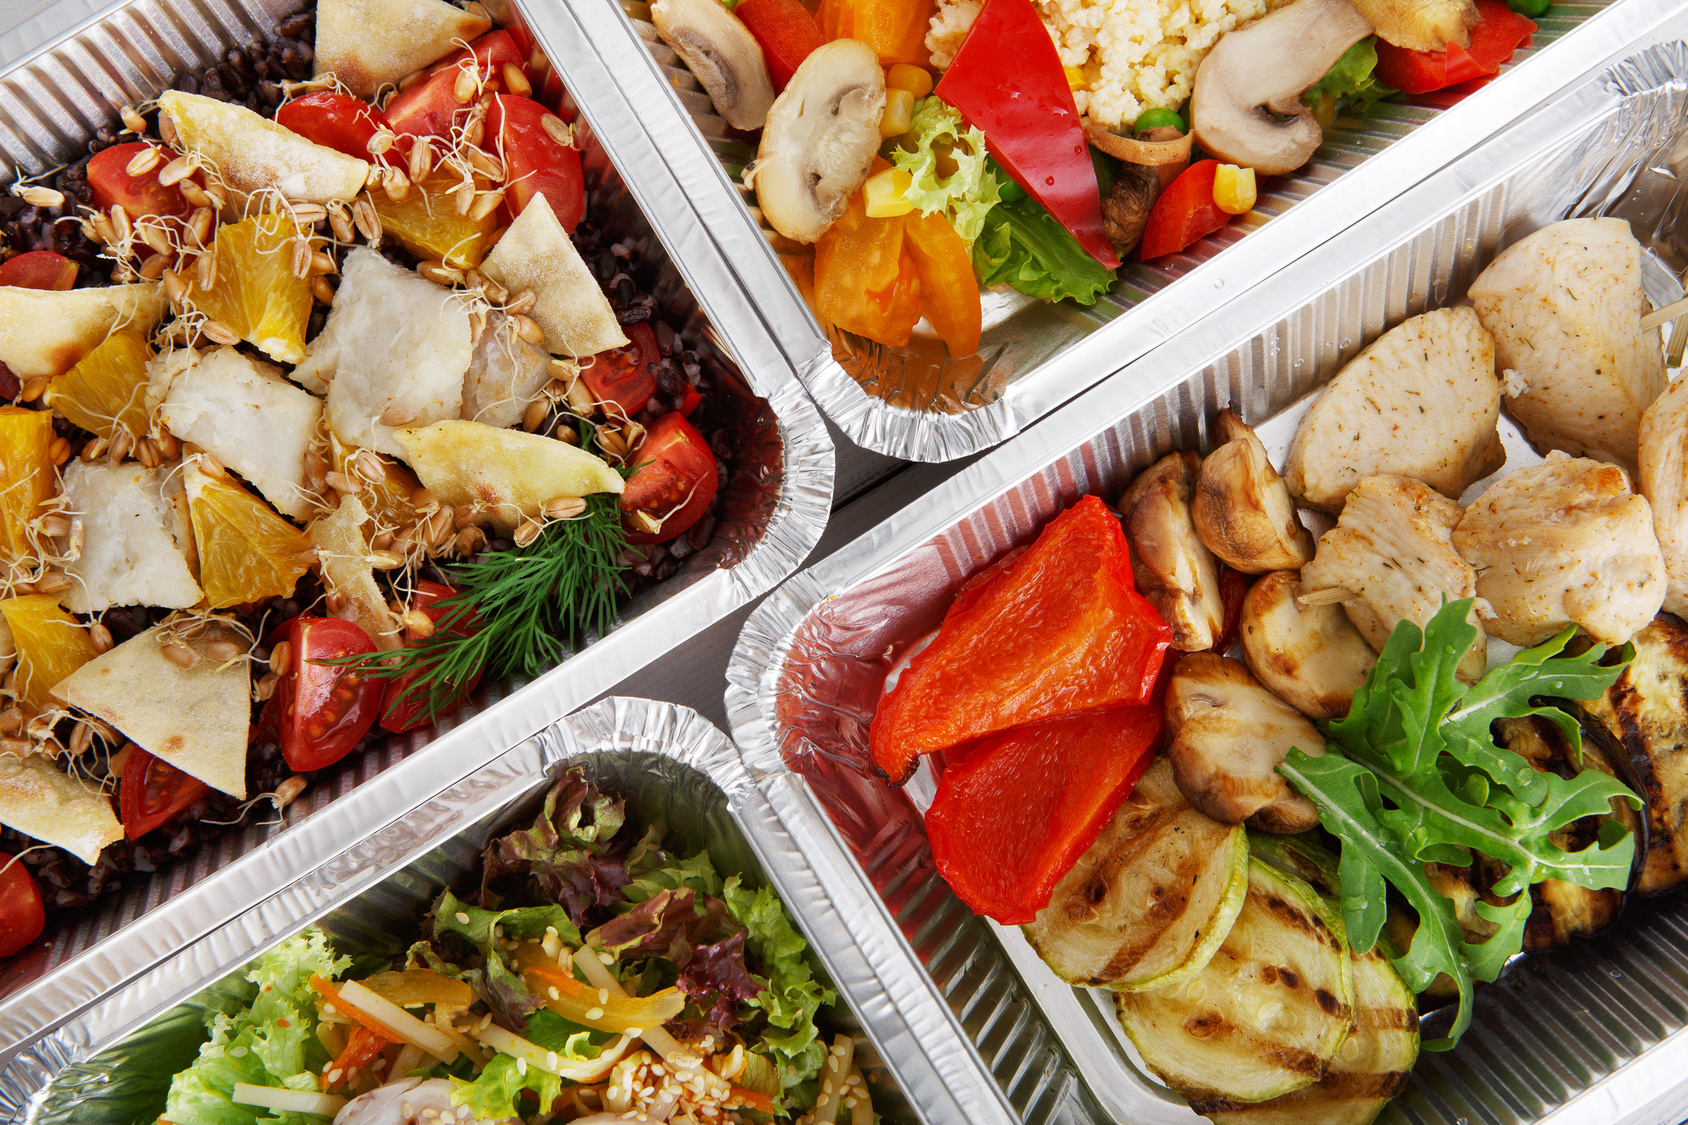 Prepared meals in container